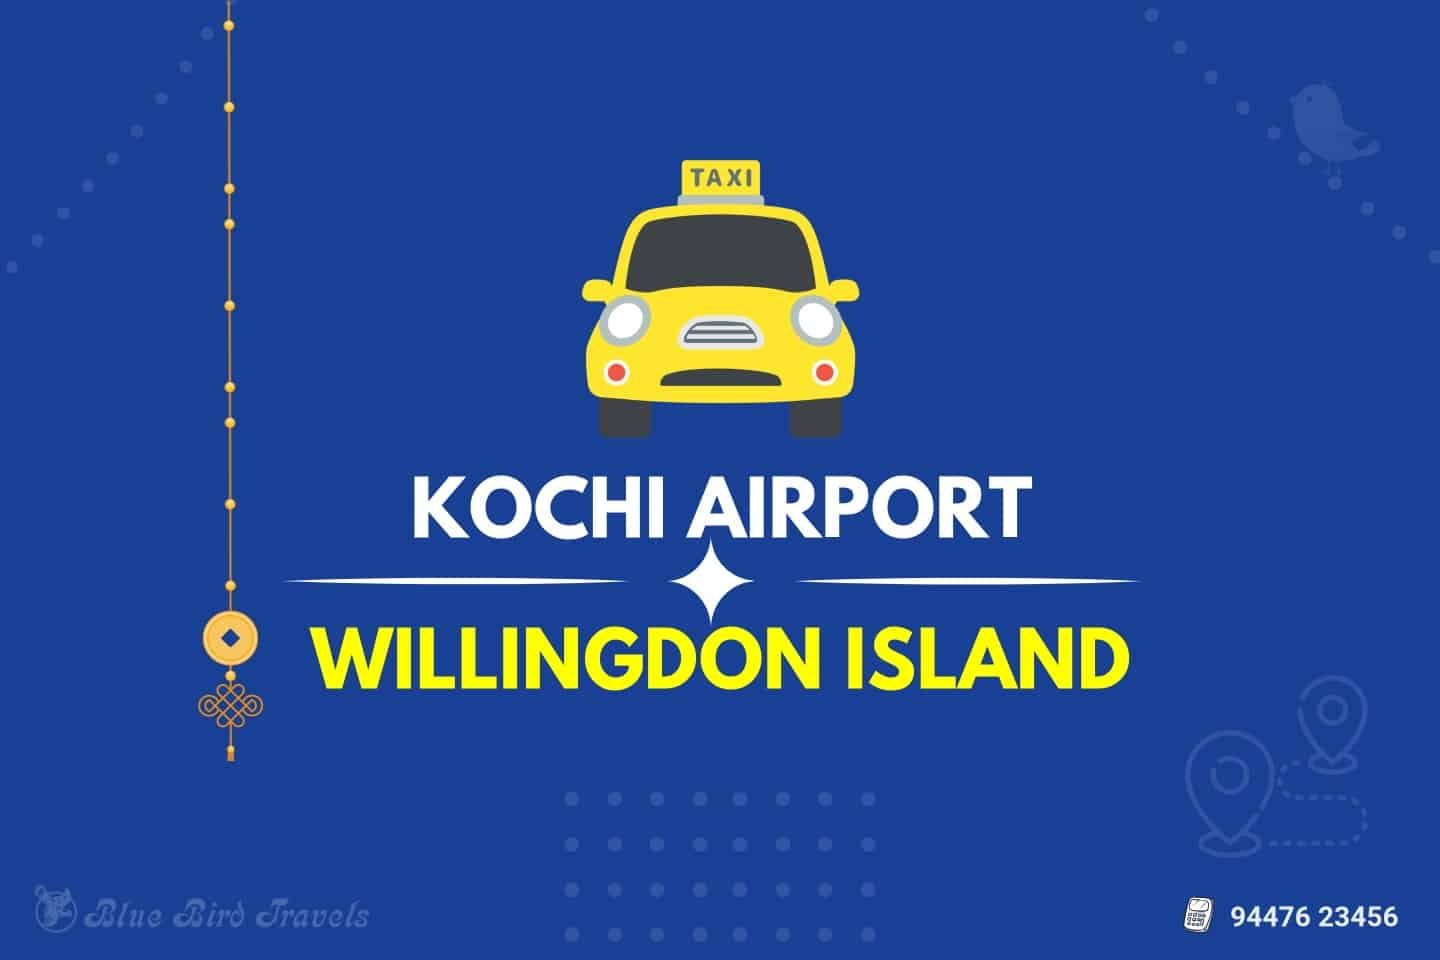 Kochi Airport to Willingdon Island Taxi (Featured Image)